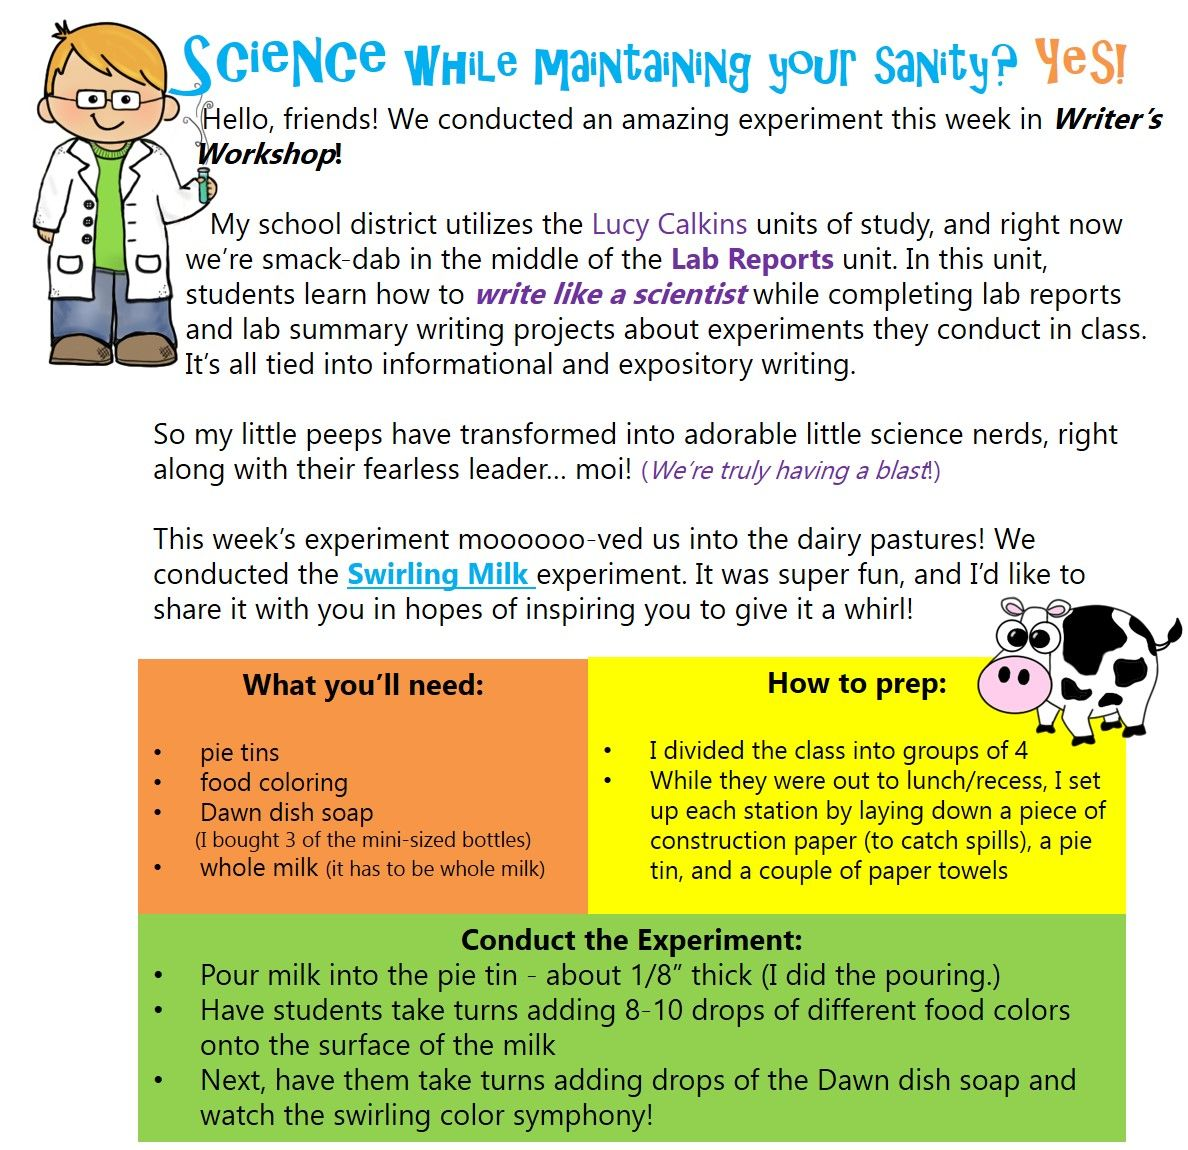 How is the writing in a blog is different from academic writing? check all that apply.